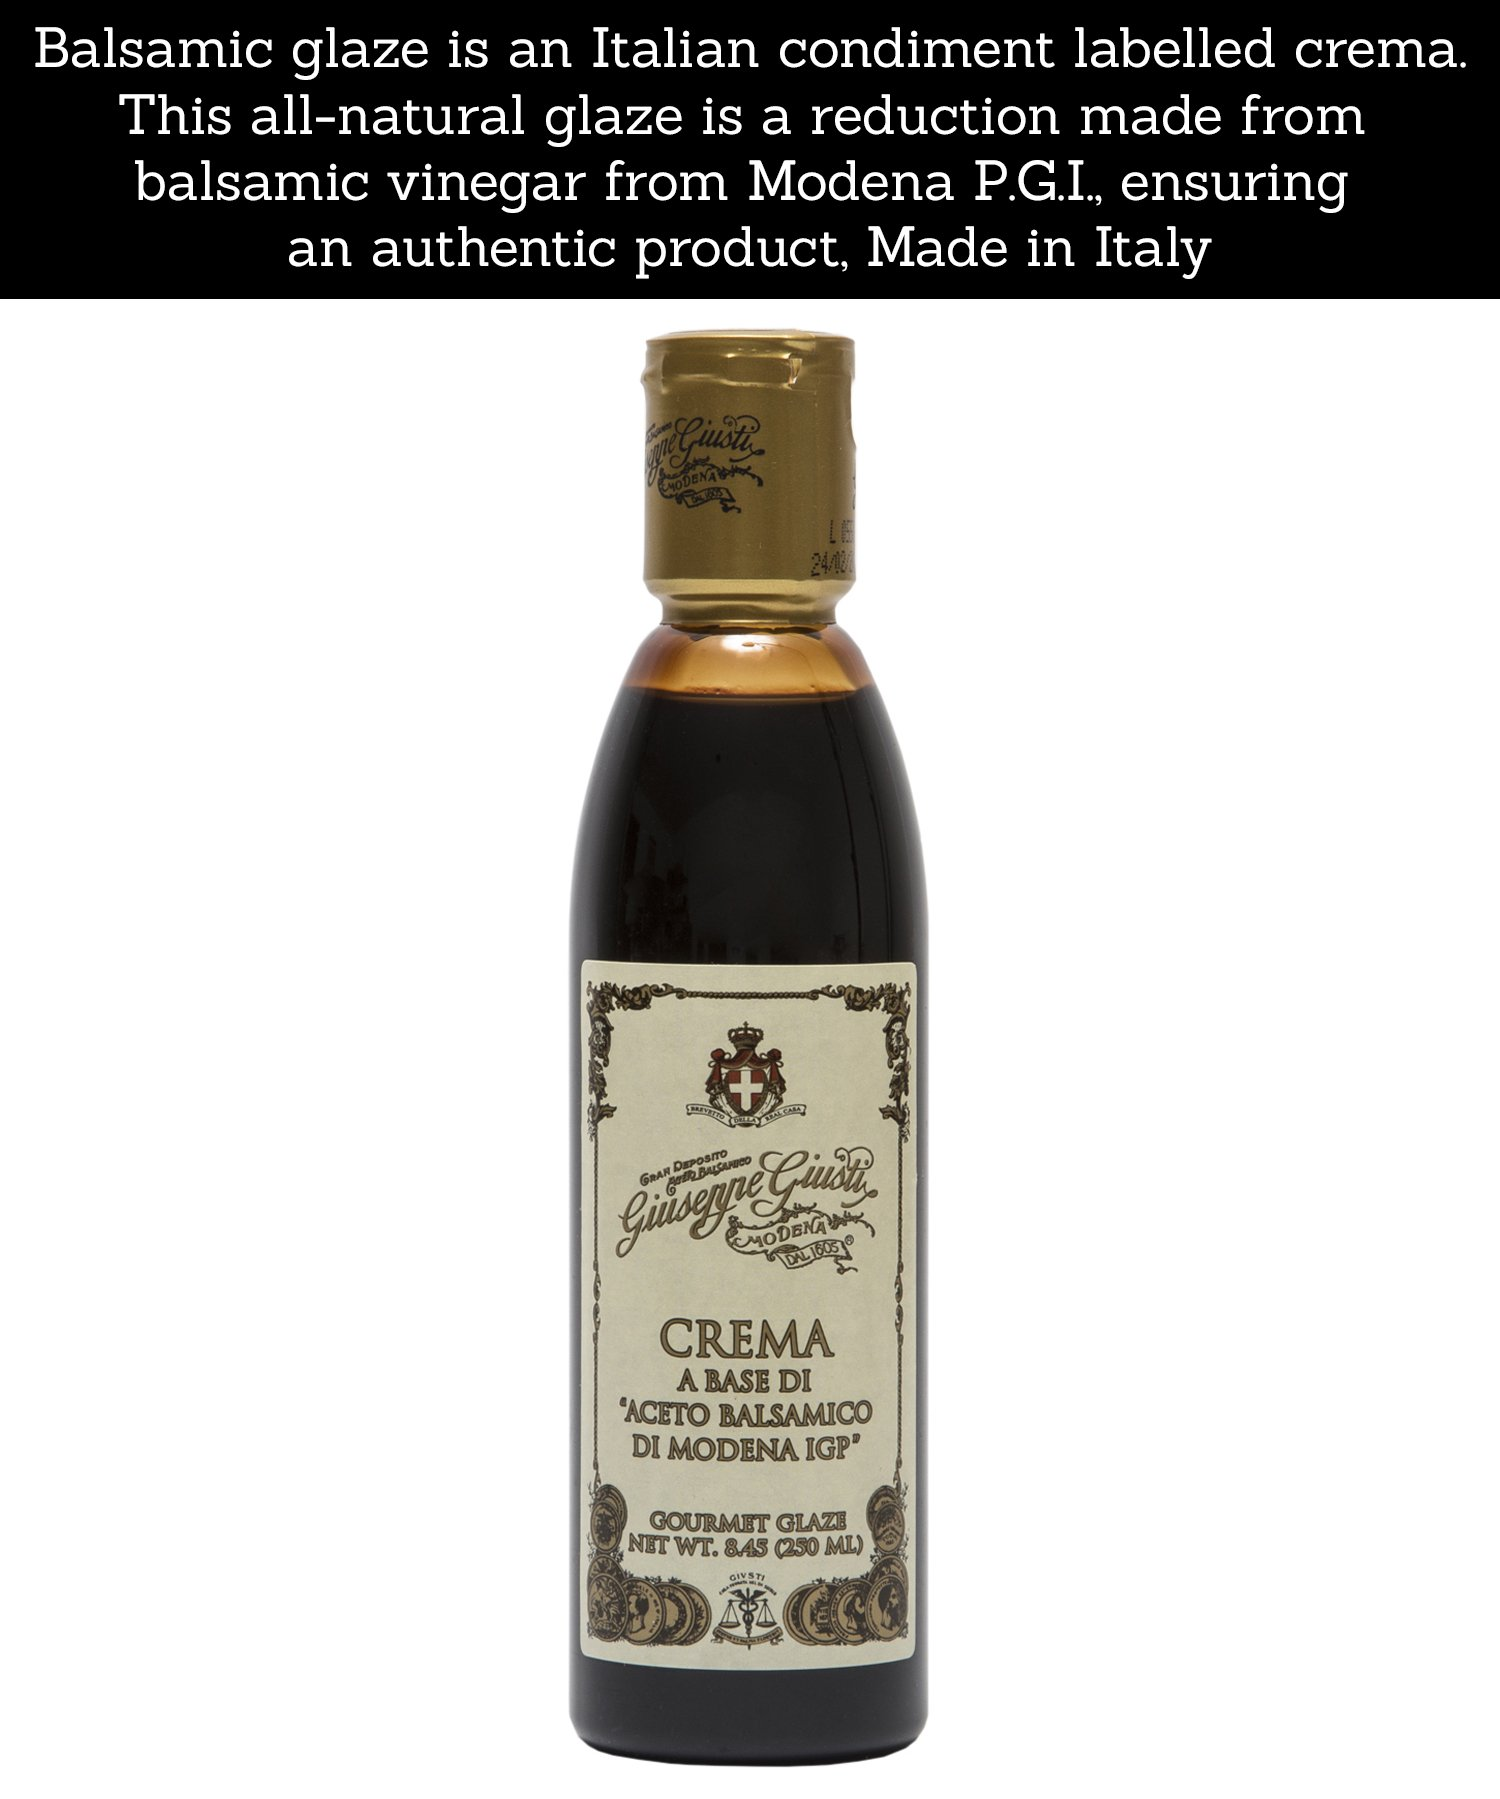 Giuseppe Giusti Italian Blasamic Vinegar Reduction of Modena IGP Reduction 8.45 fl oz (250ml) 3  ITALIAN MADE: Premium gourmet balsamic glaze that is imported and made in Italy.  INGREDIENTS: This all natural glaze is a reduction made from balsamic vinegar from Modena P.G.I., ensuring an authentic product  FLAVOR: Balsamic reductions create a rich, flavorful, syrupy-like glaze.